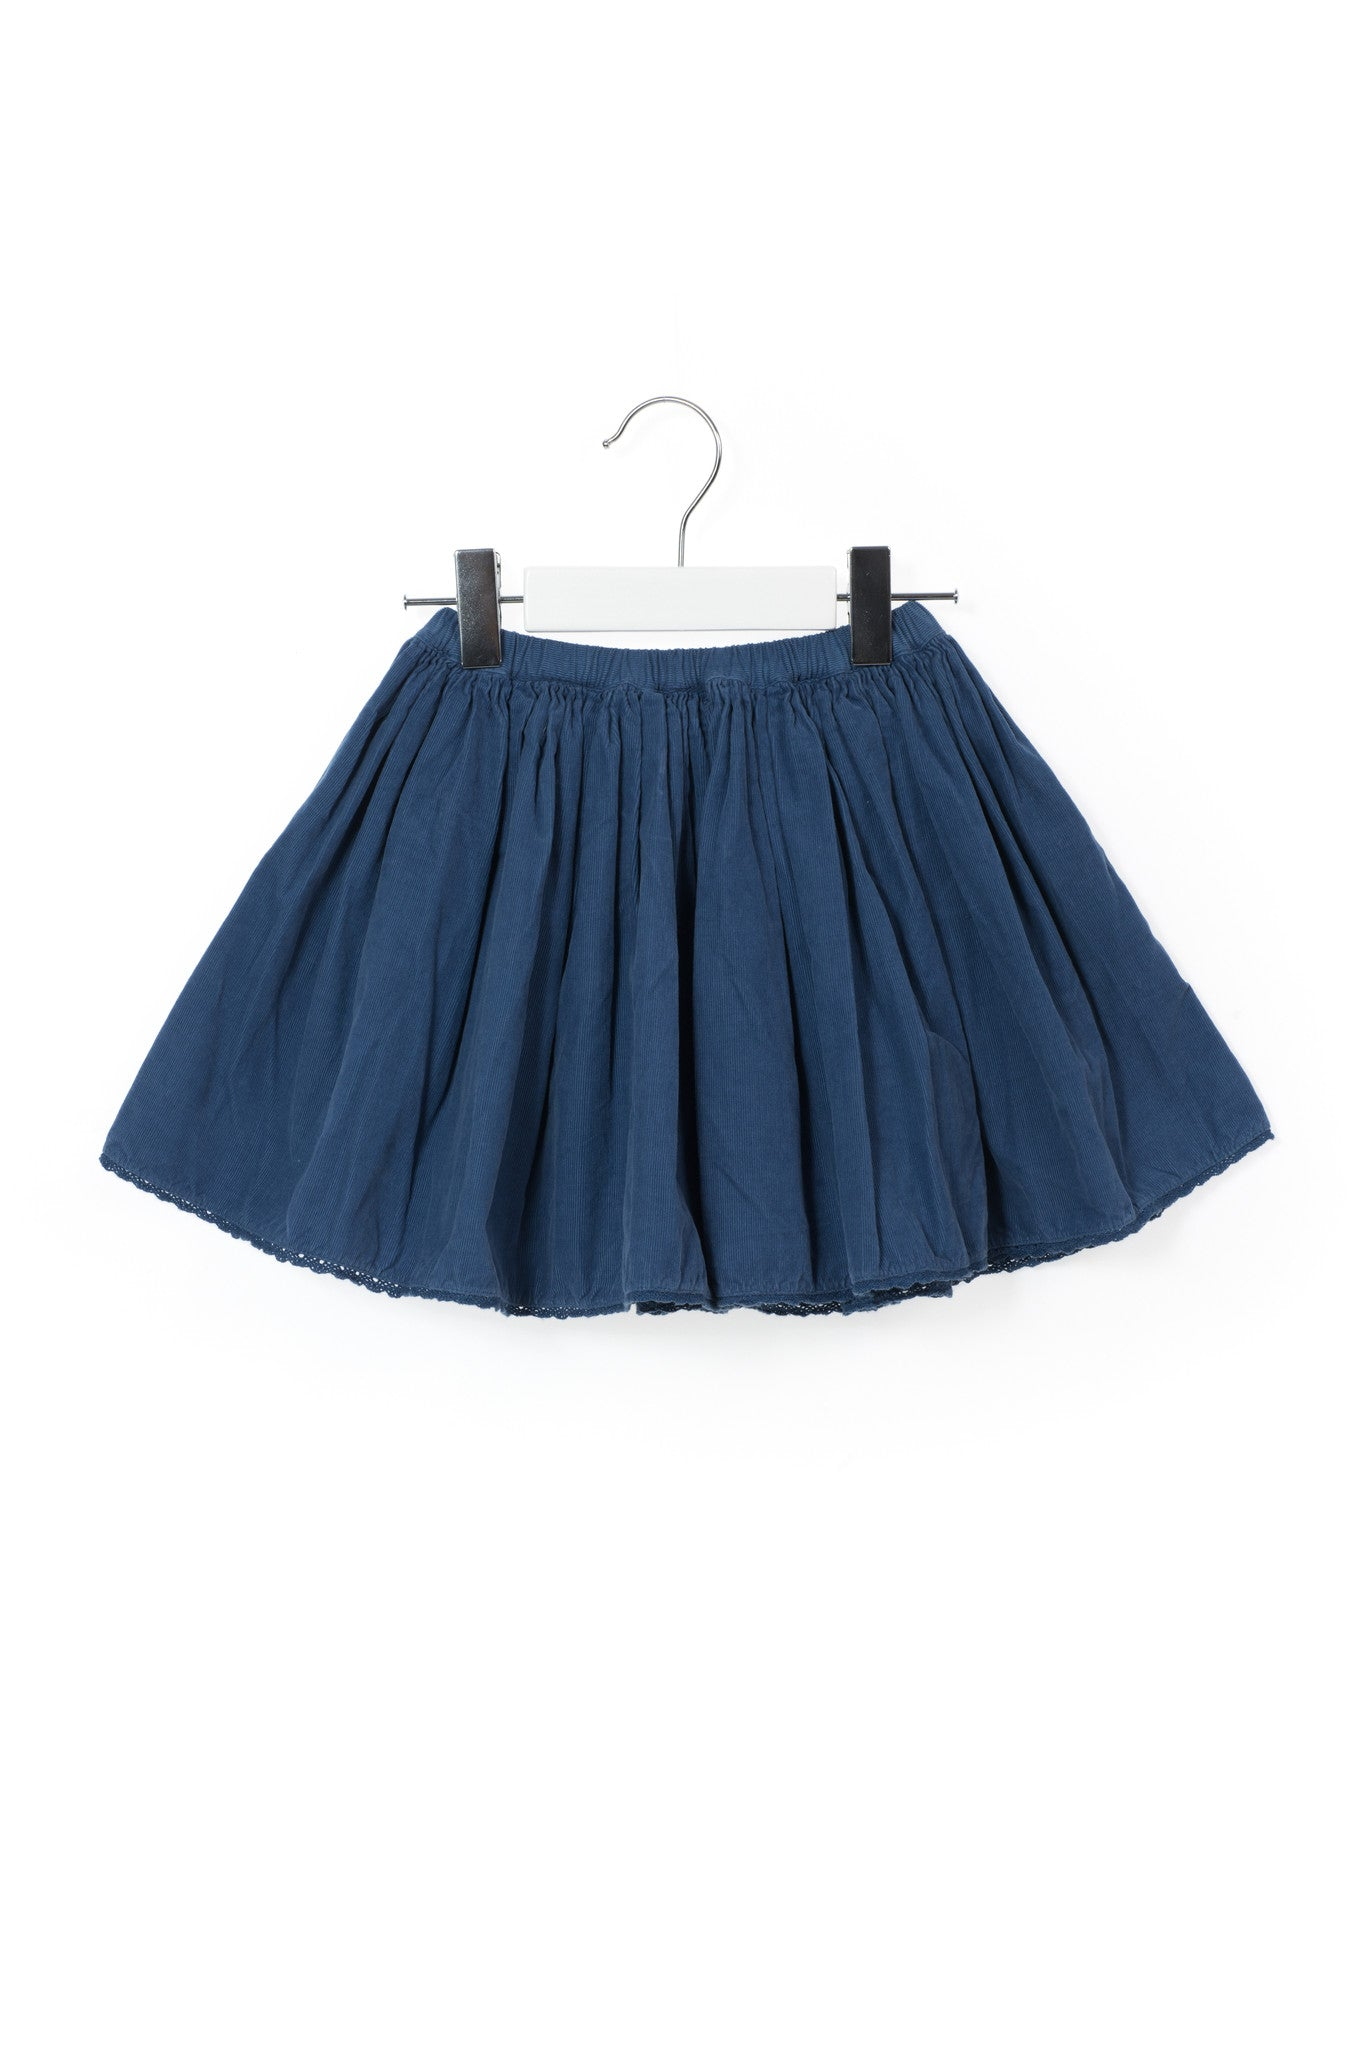 Skirt 6T, Bonton at Retykle - Online Baby & Kids Clothing Up to 90% Off